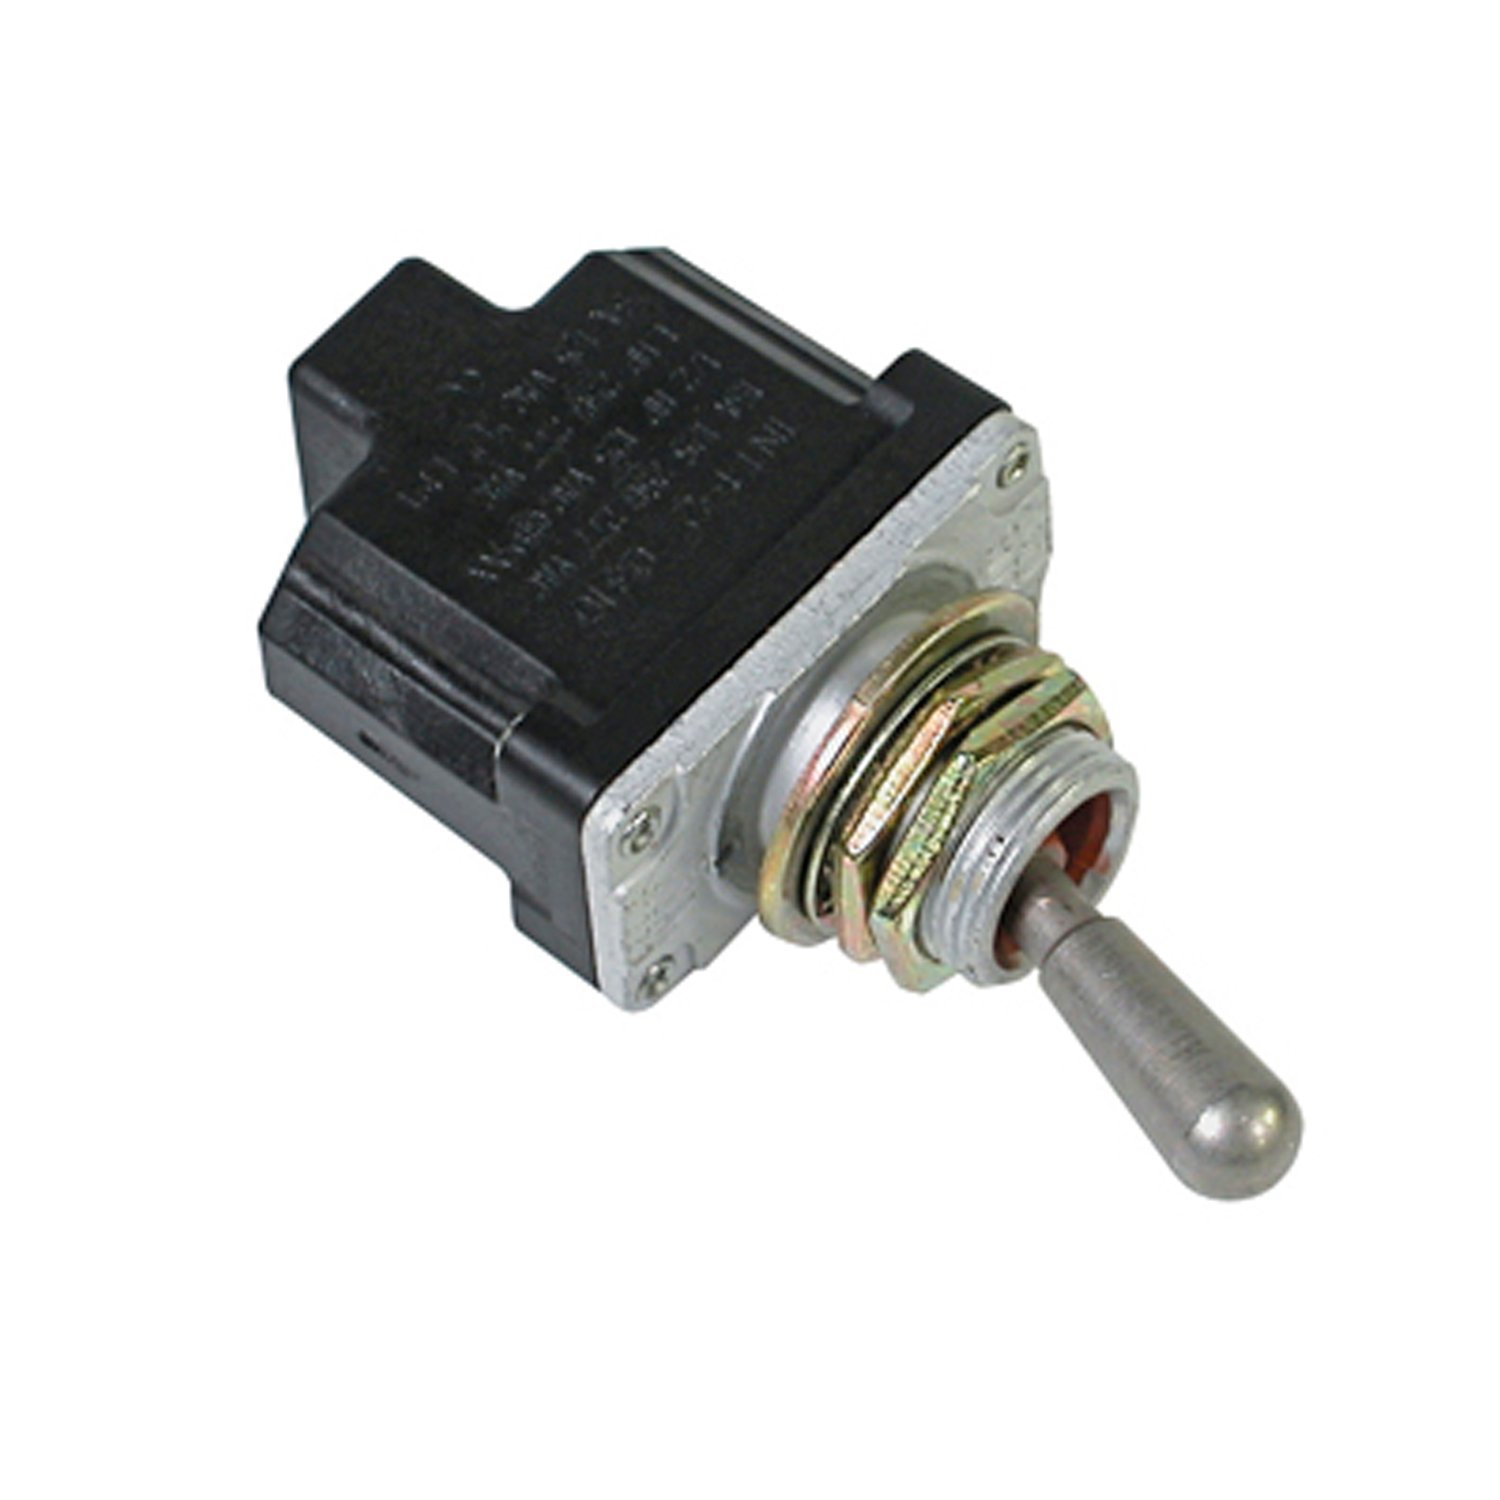 8111 - Kill Switch for MSD 12 and 20 Amp Pro Mags (Not 44 Amp) Image